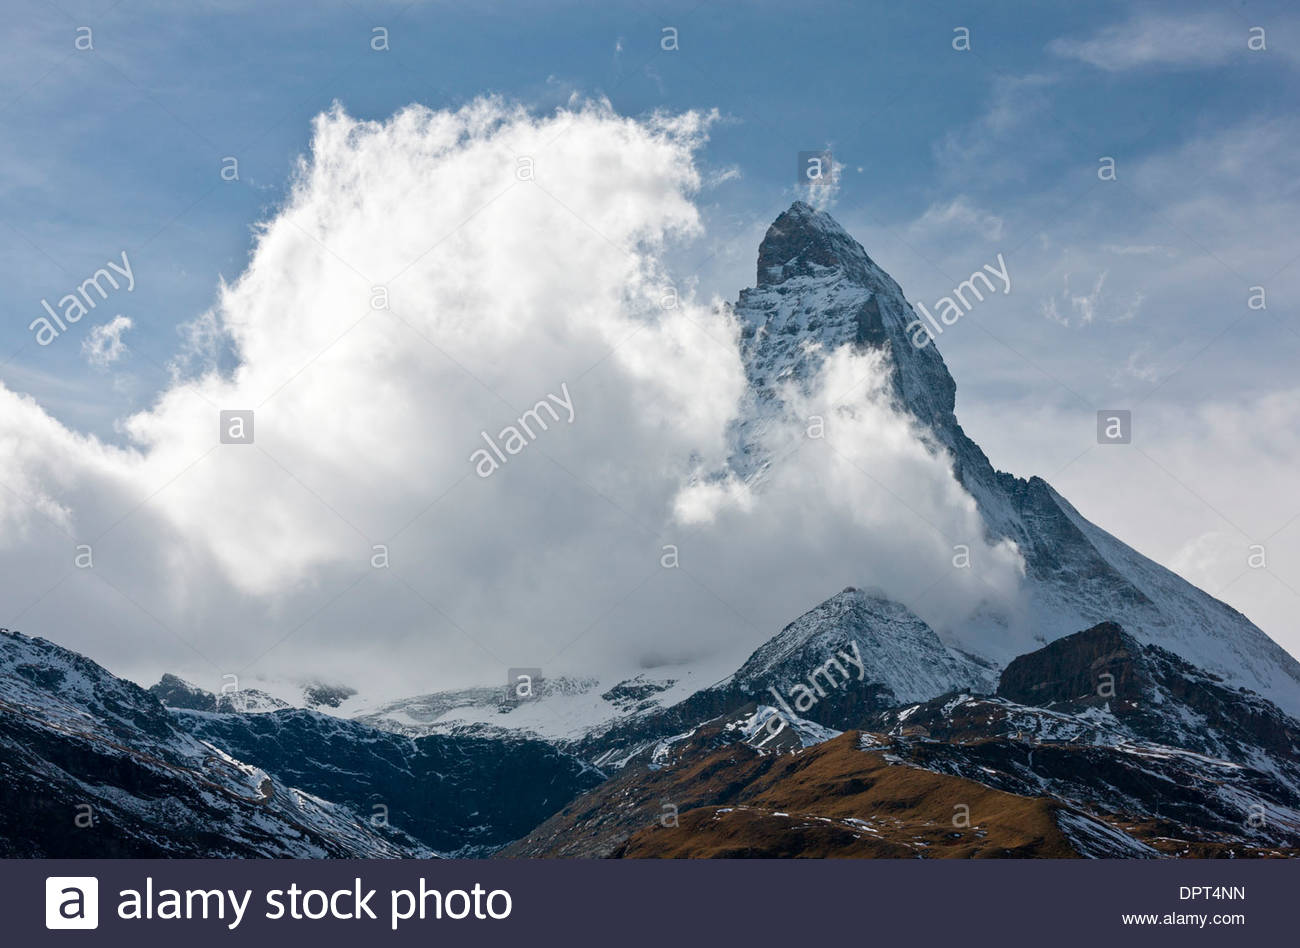 Matterhorn or Monte Cervino, with clouds coming up from the south; Switzerland. - Stock Image